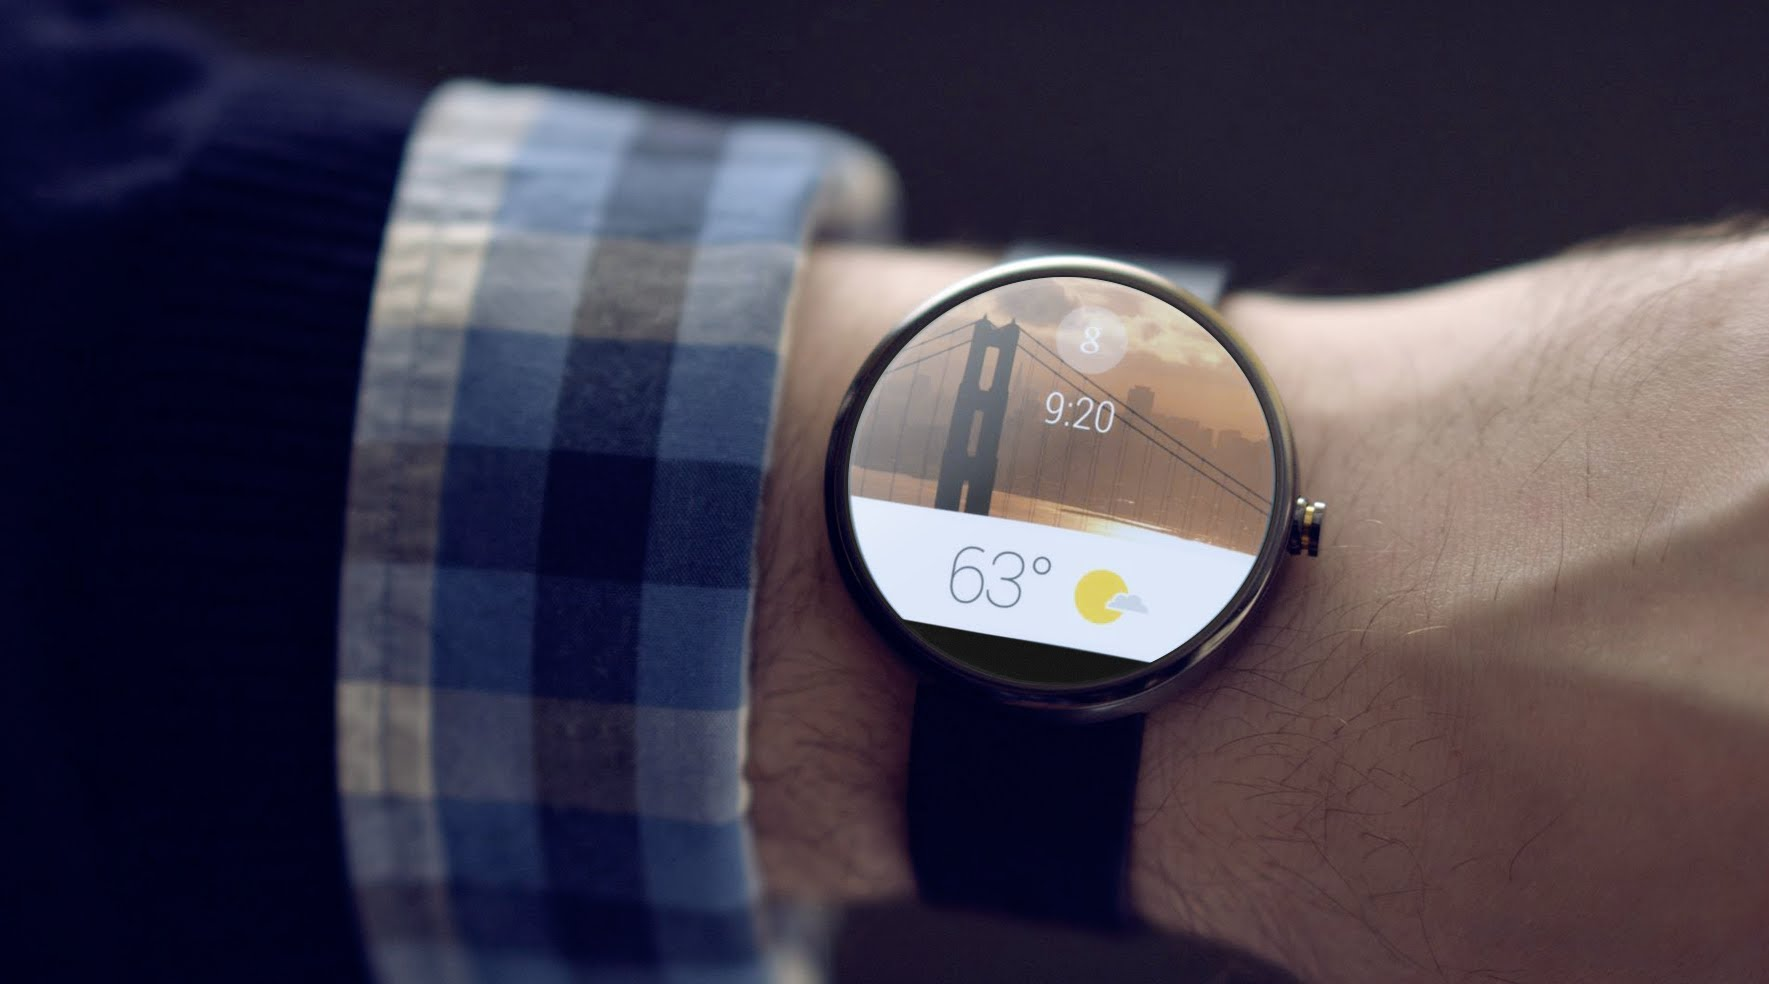 Android Wear: A Platform for Wearable Devices